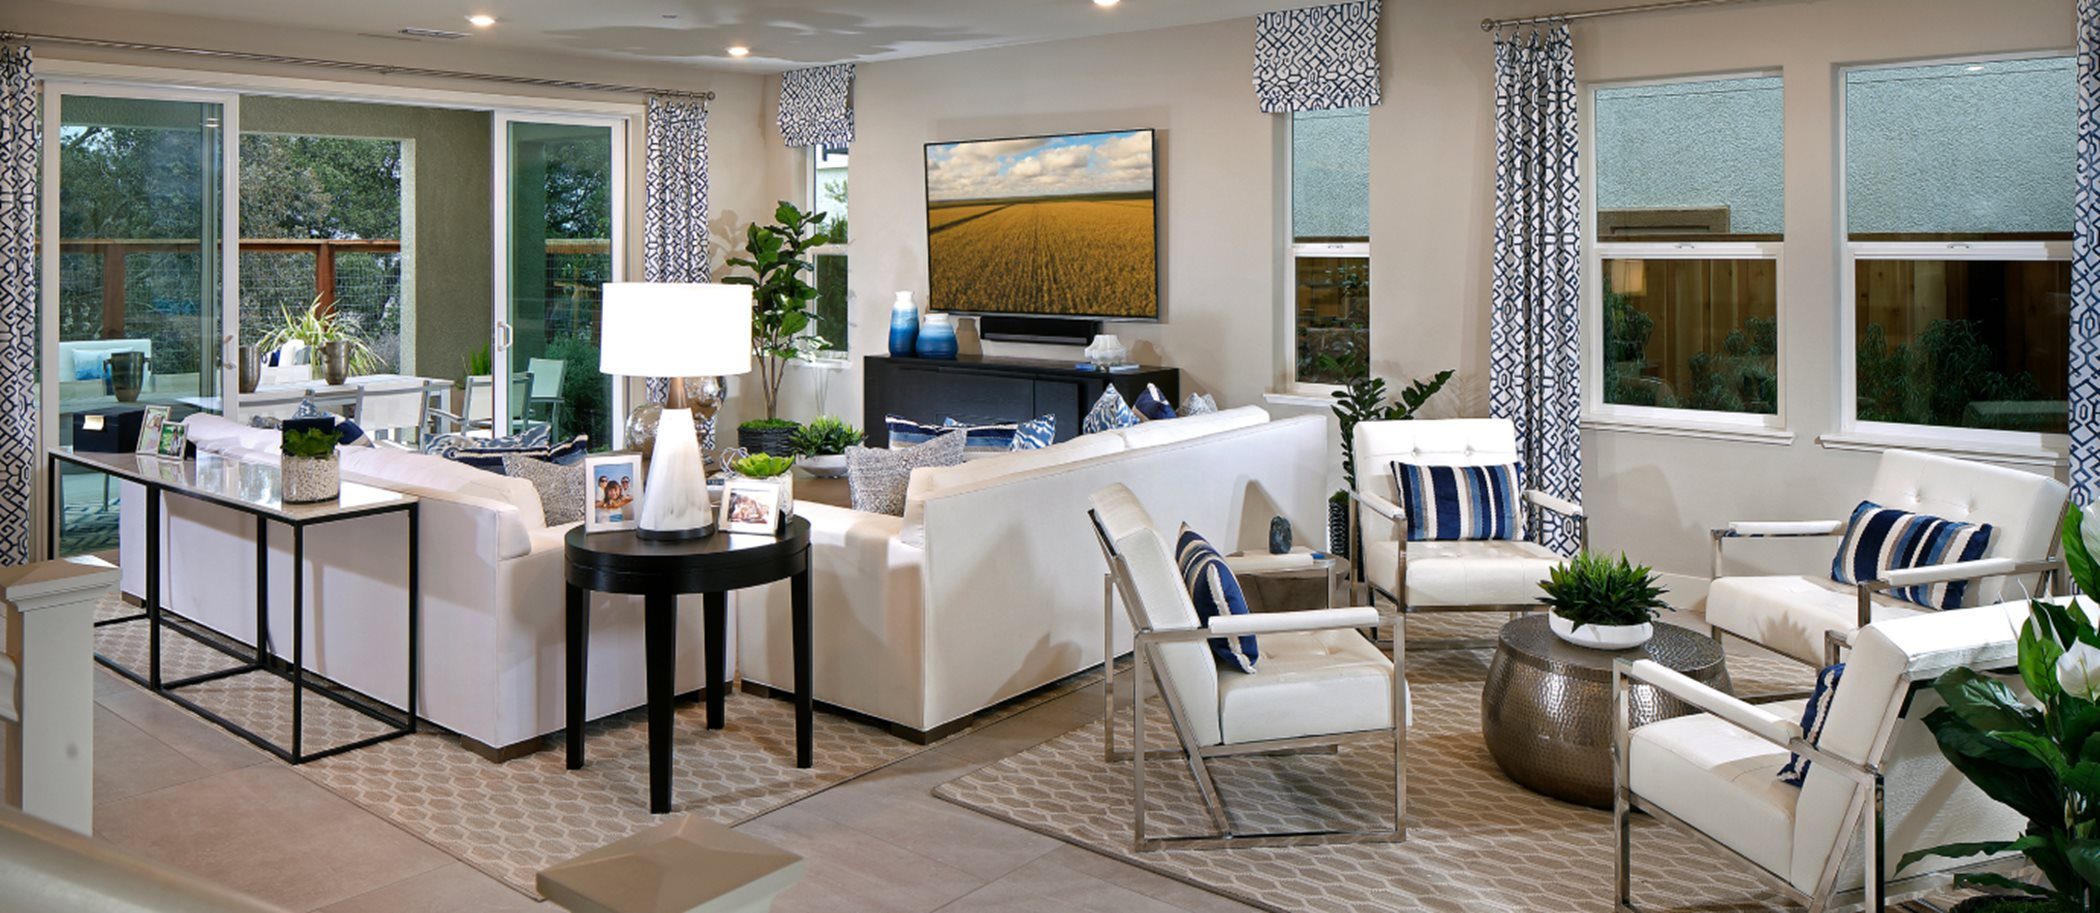 The Preserve Highlands Residence 5 Great Room